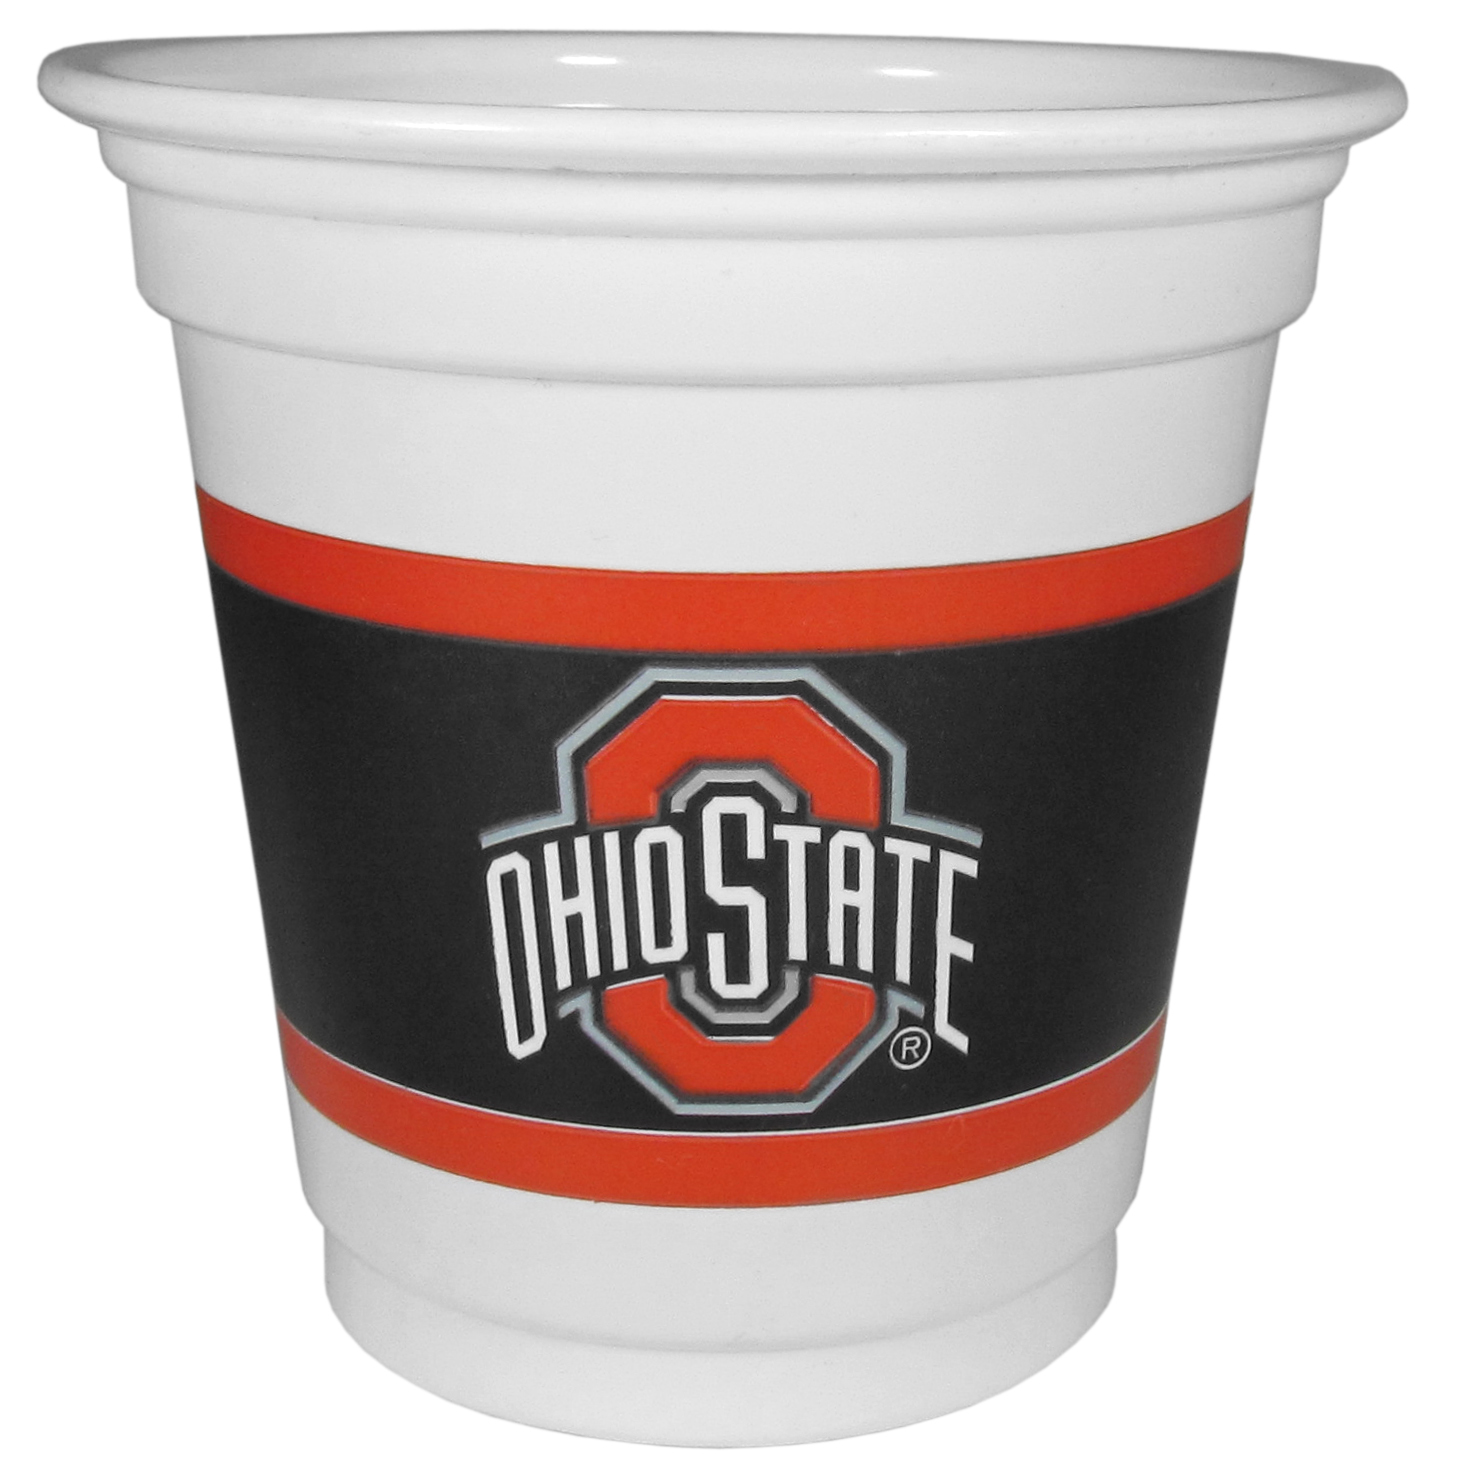 Ohio St. Buckeyes 18 Game Day Mini Cups - No better way to show your off your team pride on game day than these Ohio St. Buckeyes game day mini cups. The 3 ounce disposable glasses are the perfect addition to your game day party or tailgating BBQ. The cups come in a sleeve of 18 to make sure everyone is sporting true team spirit!